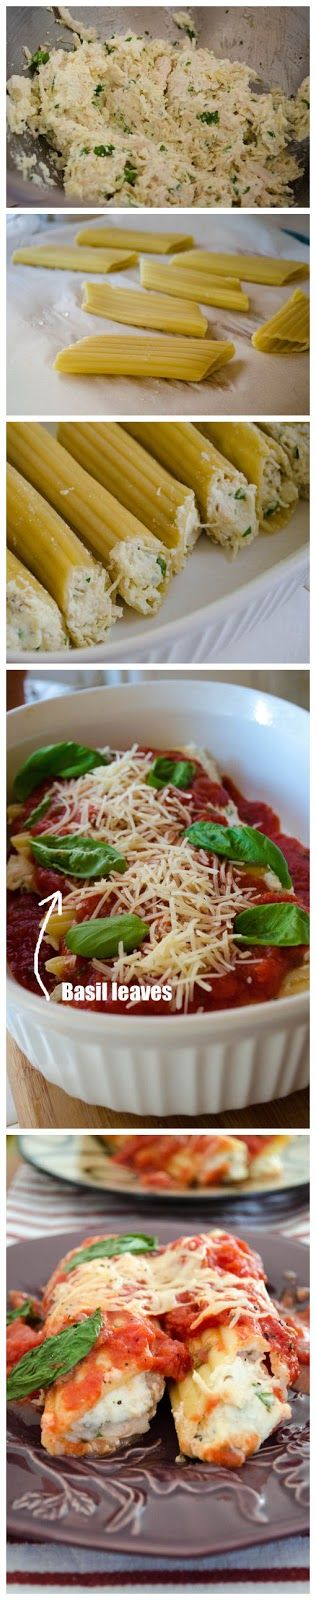 cookglee recipe pictures: Parmesan Chicken Manicotti